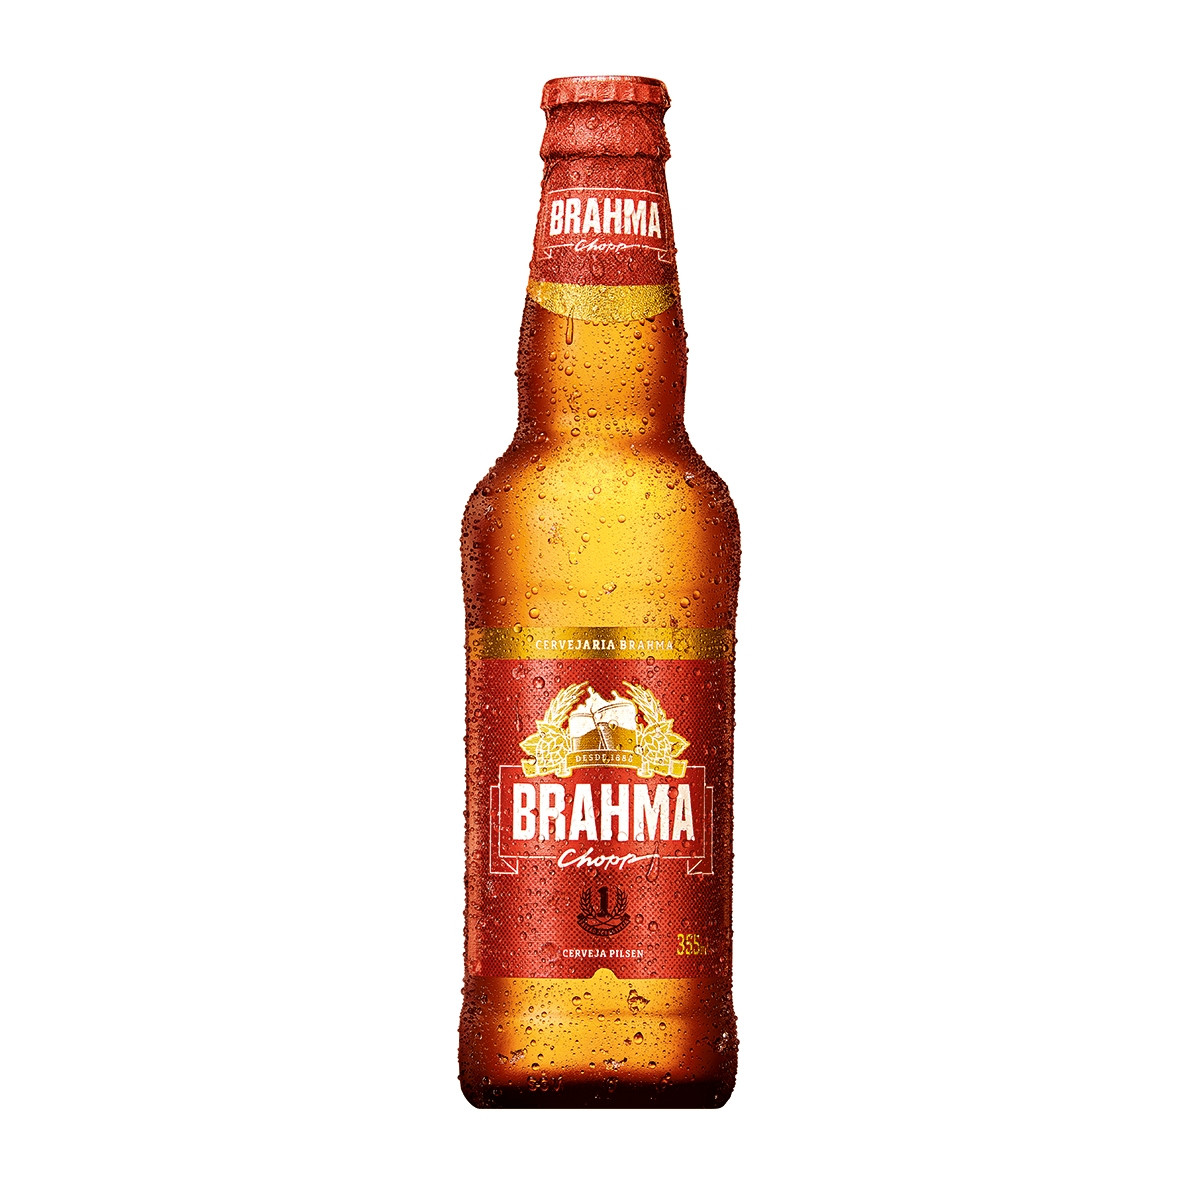 CERVEJA BRAHMA CHOPP PILSEN LONG NECK 355 ML